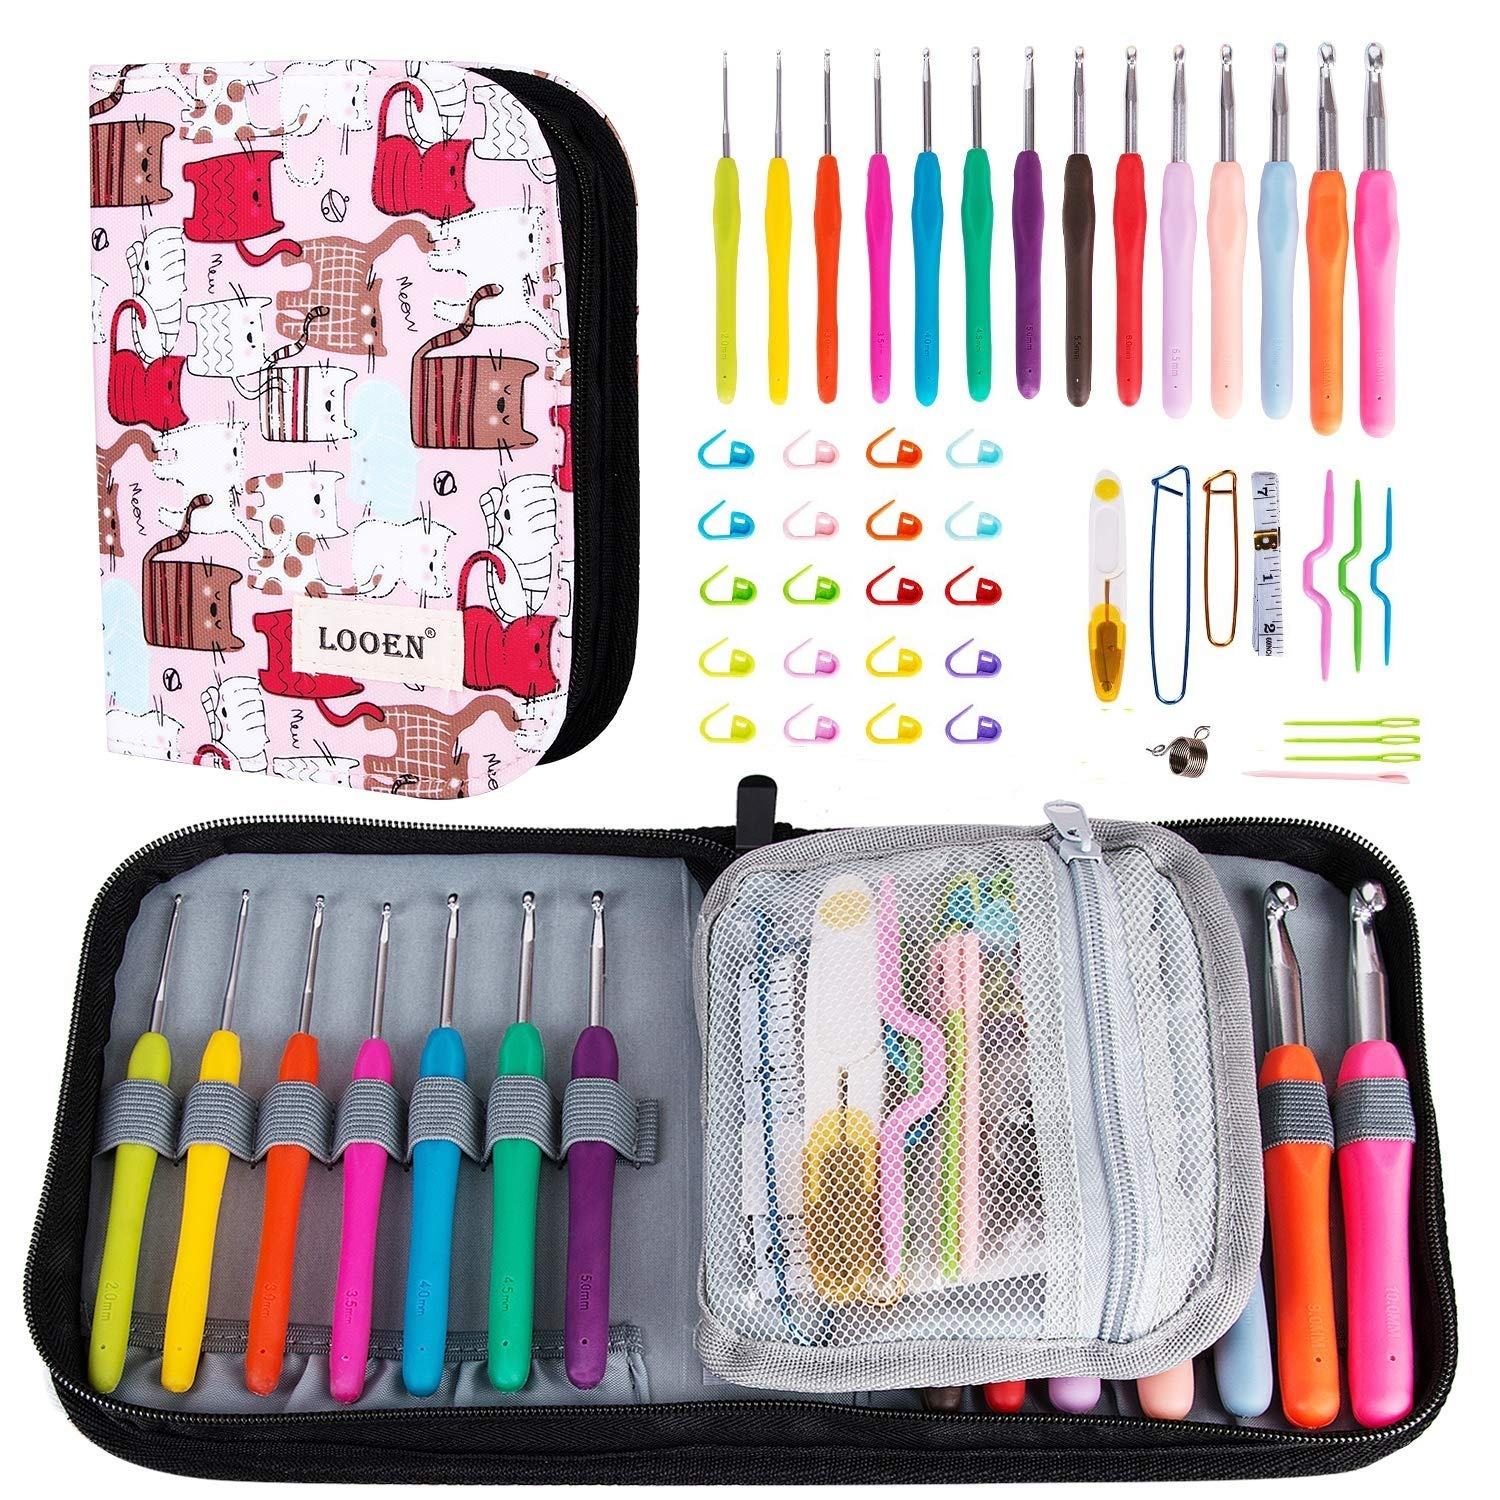 K Kwokker 48 Pieces Ergonomic Crochet Hooks Set with Cartoon Cat Case Grip Crochet Kit and Accessories for Beginners and Crocheters, Complete Accessories, Small Volume and Convenient to Carry, Pink